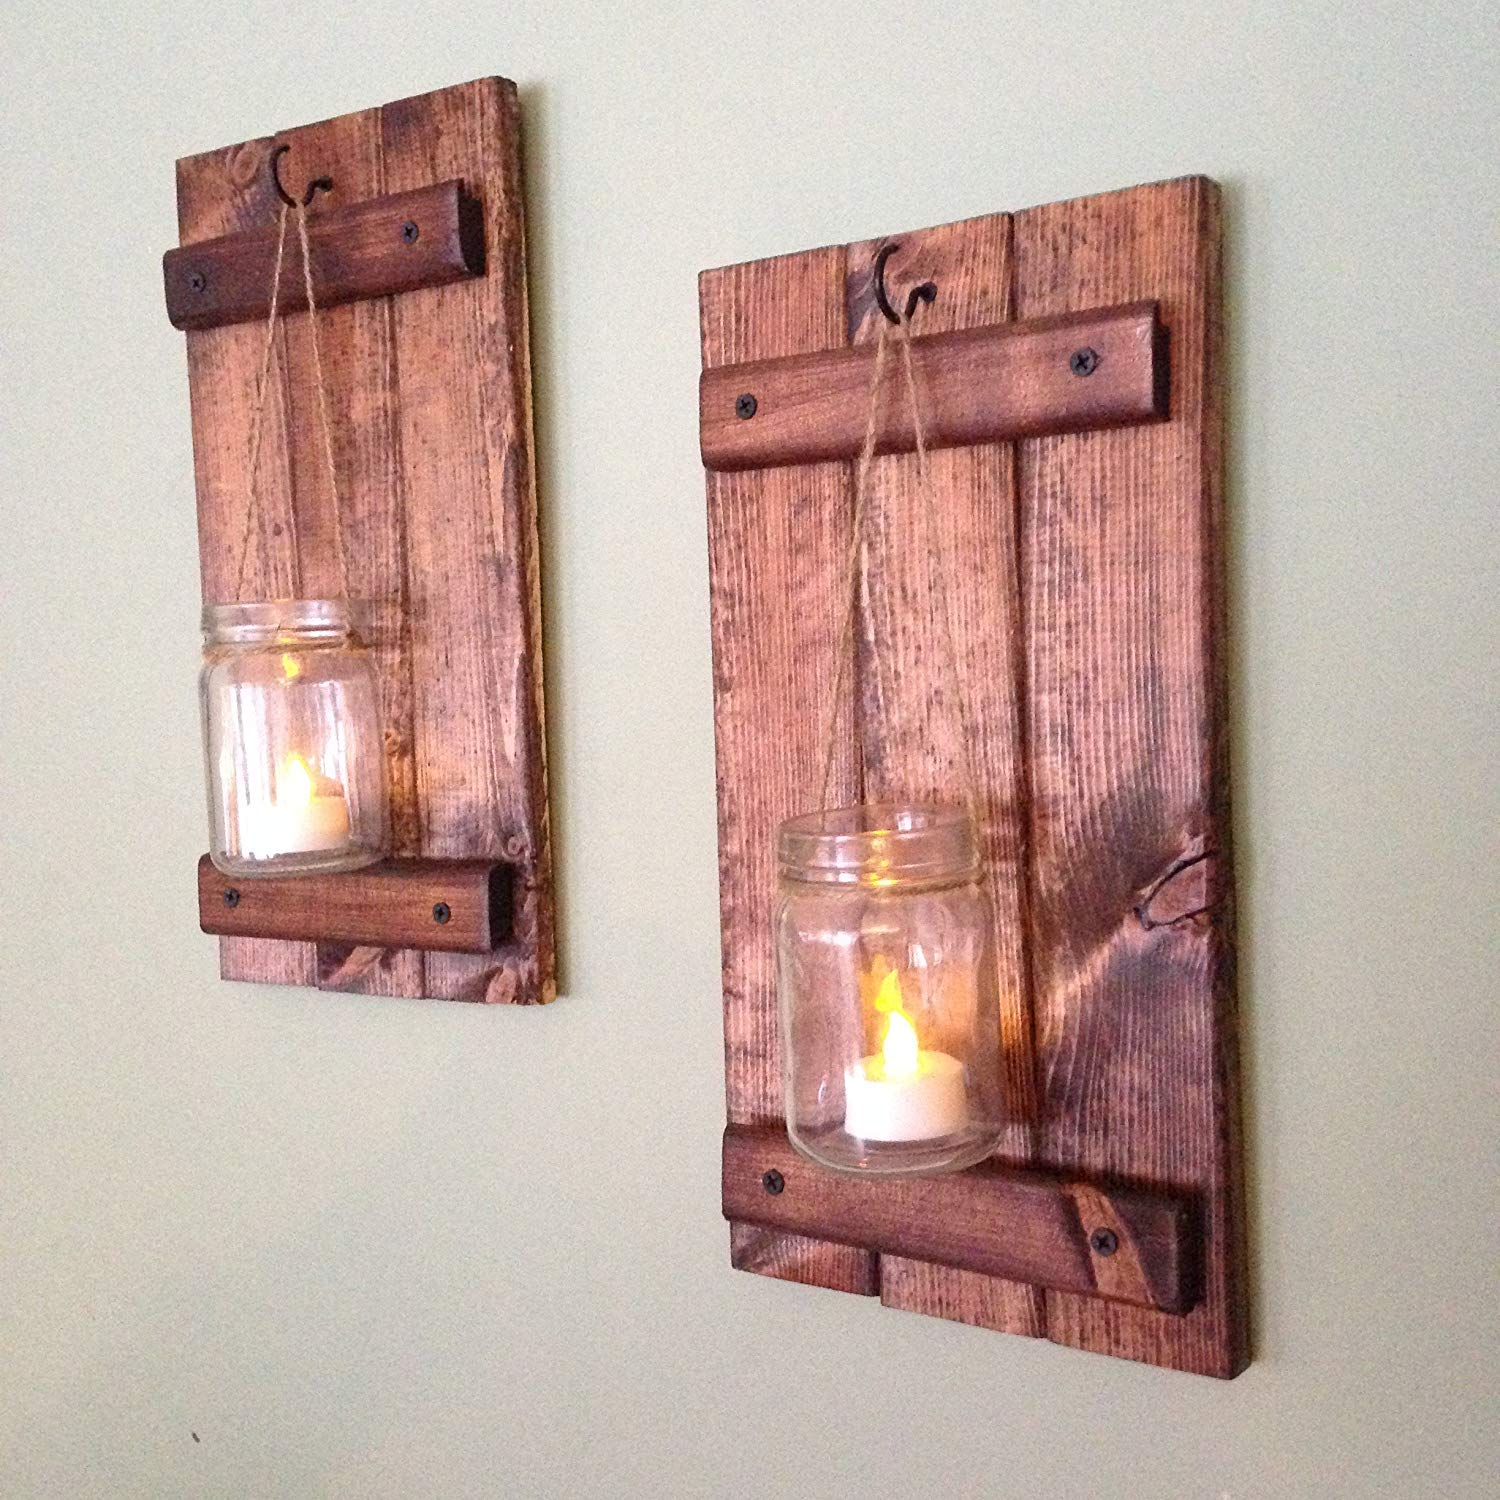 Wall Sconce, Rustic Wall Decor, Wood Wall Sconce, Rustic Wall Sconce, Candle Holder, Set of Two